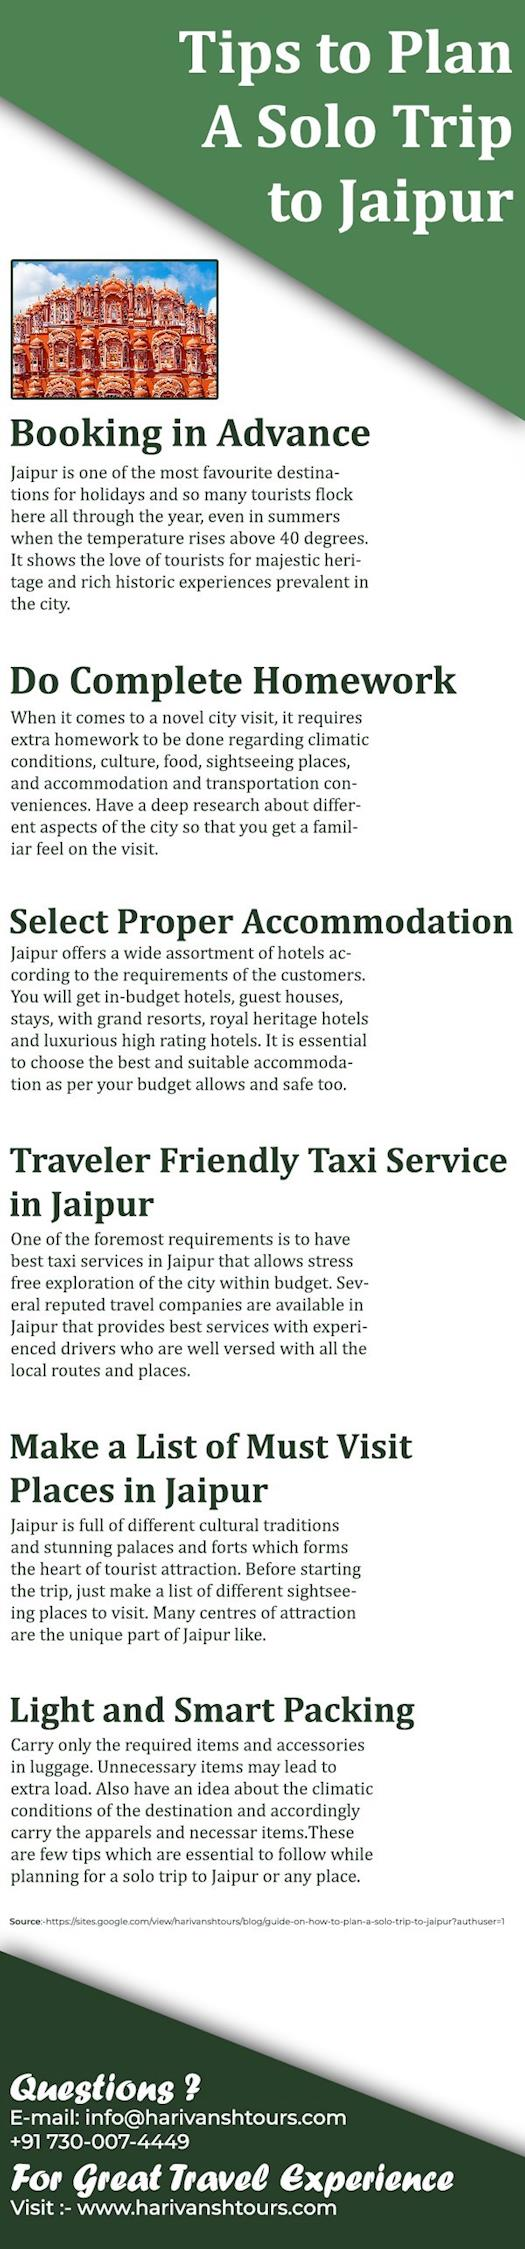 Guide On How To Plan A Solo Trip To Jaipur- Harivansh Tours